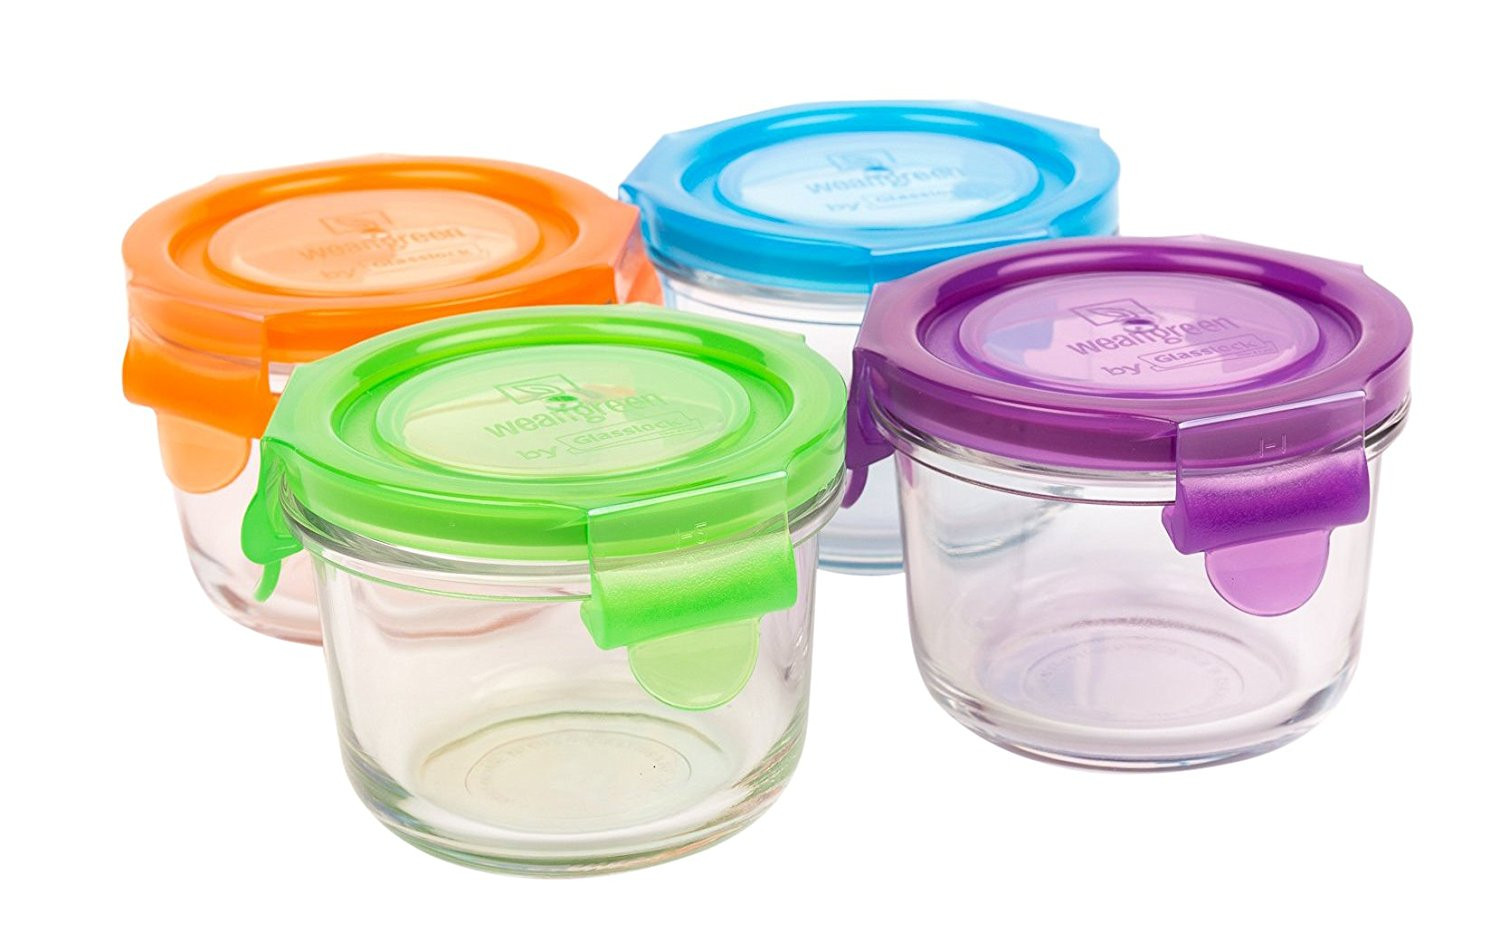 Best ideas about Baby Food Storage . Save or Pin Wean Bowls Leakproof Glass Homemade Baby Food Storage Now.